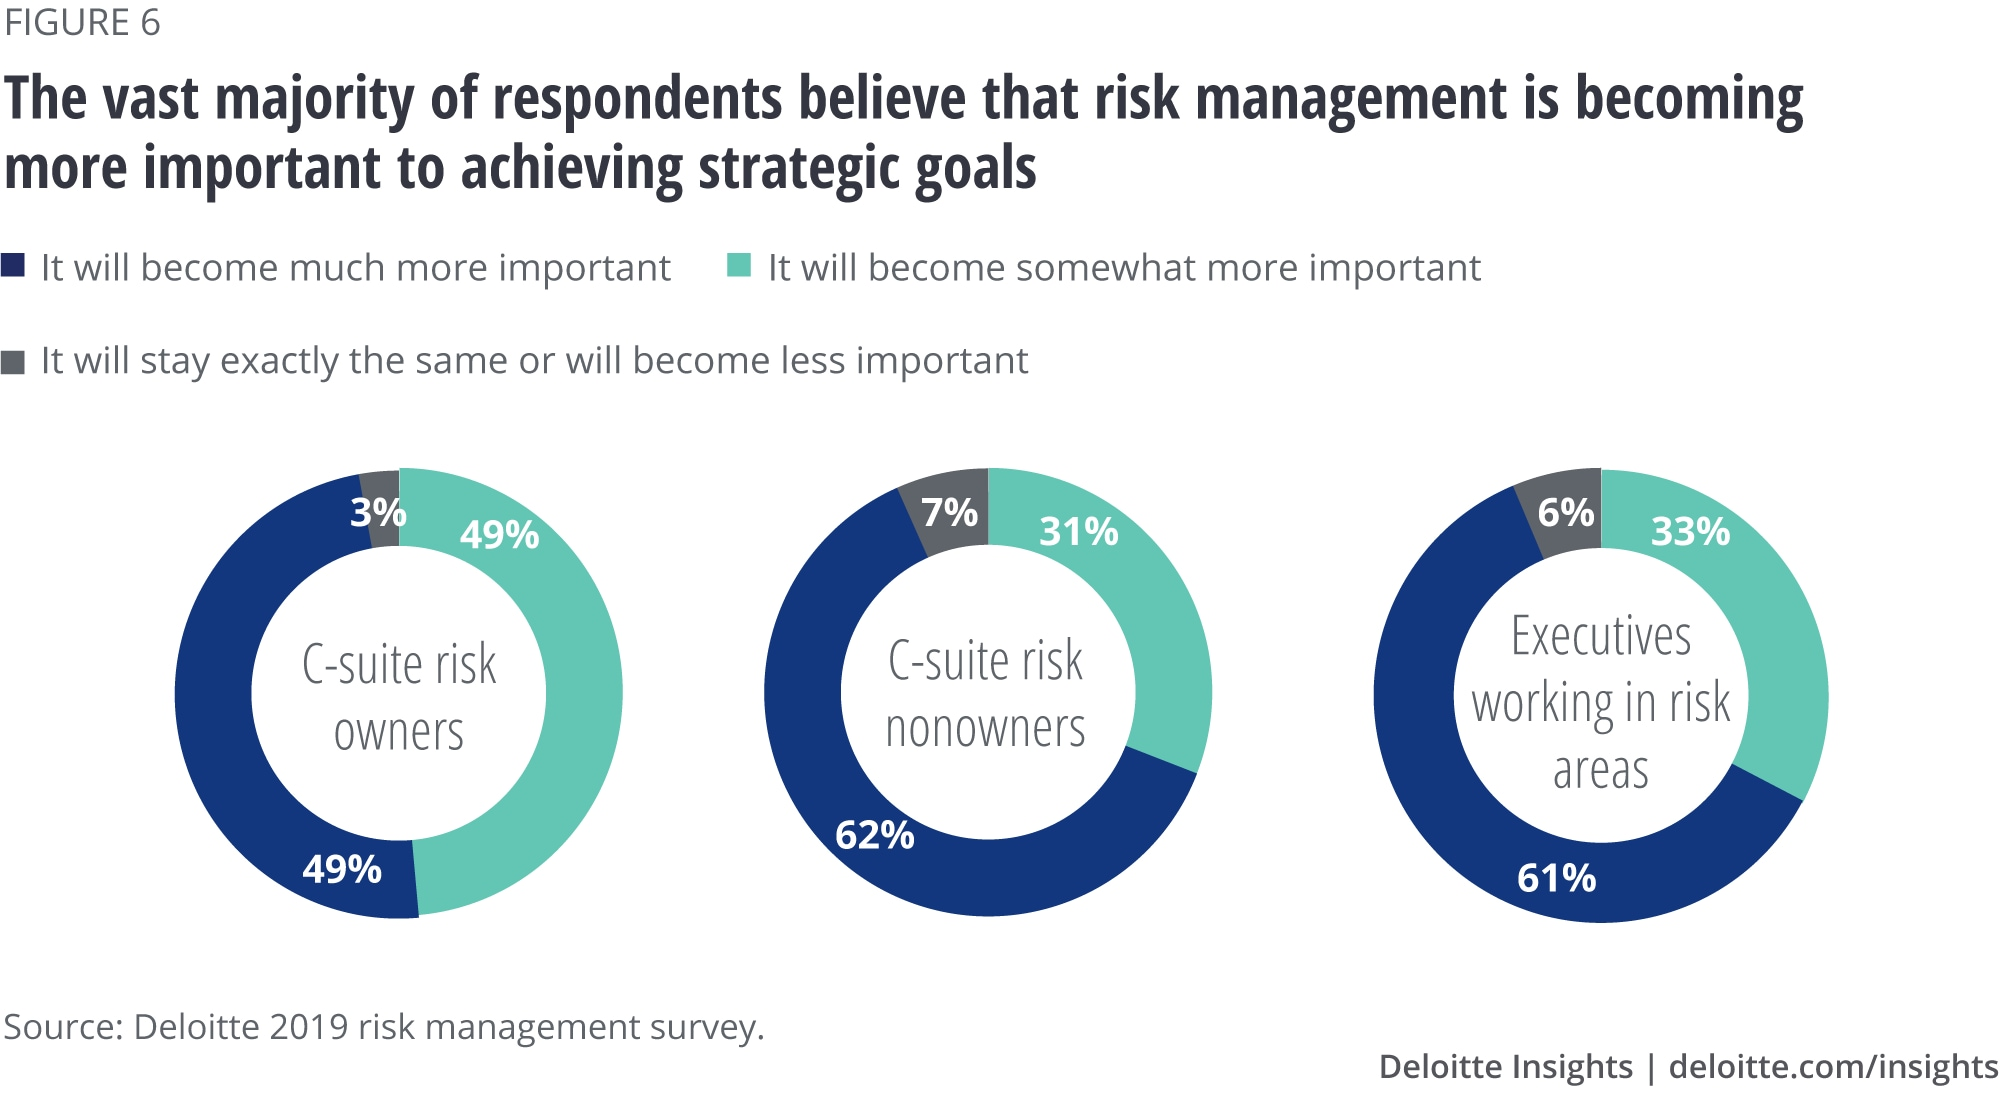 The vast majority of respondents believe that risk management is becoming more important to achieving strategic goals